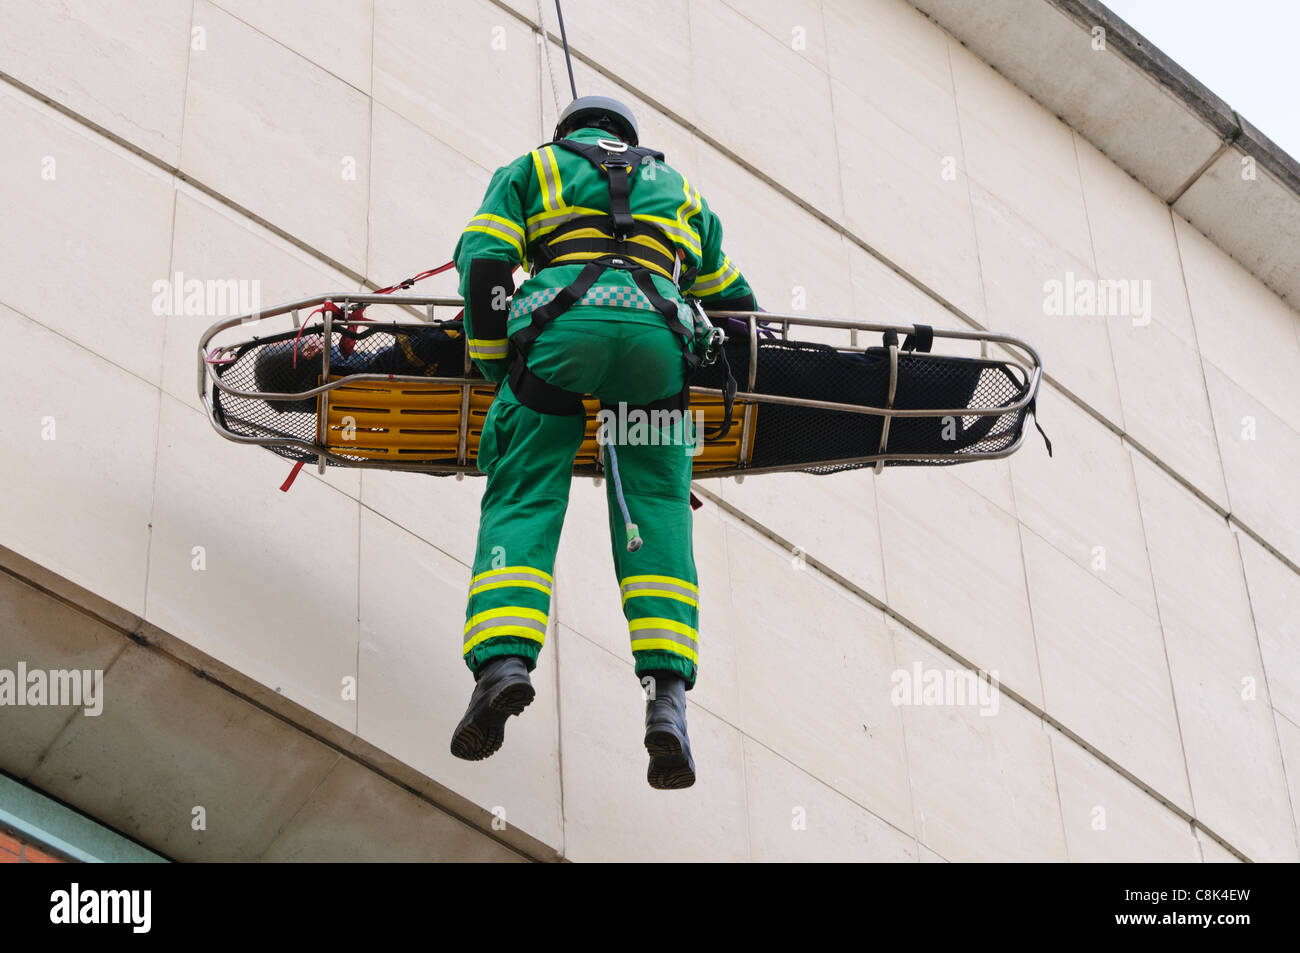 Paramedic is winched down a building on a rope with a patient during the launch of Northern Ireland Ambulance Service - Stock Image